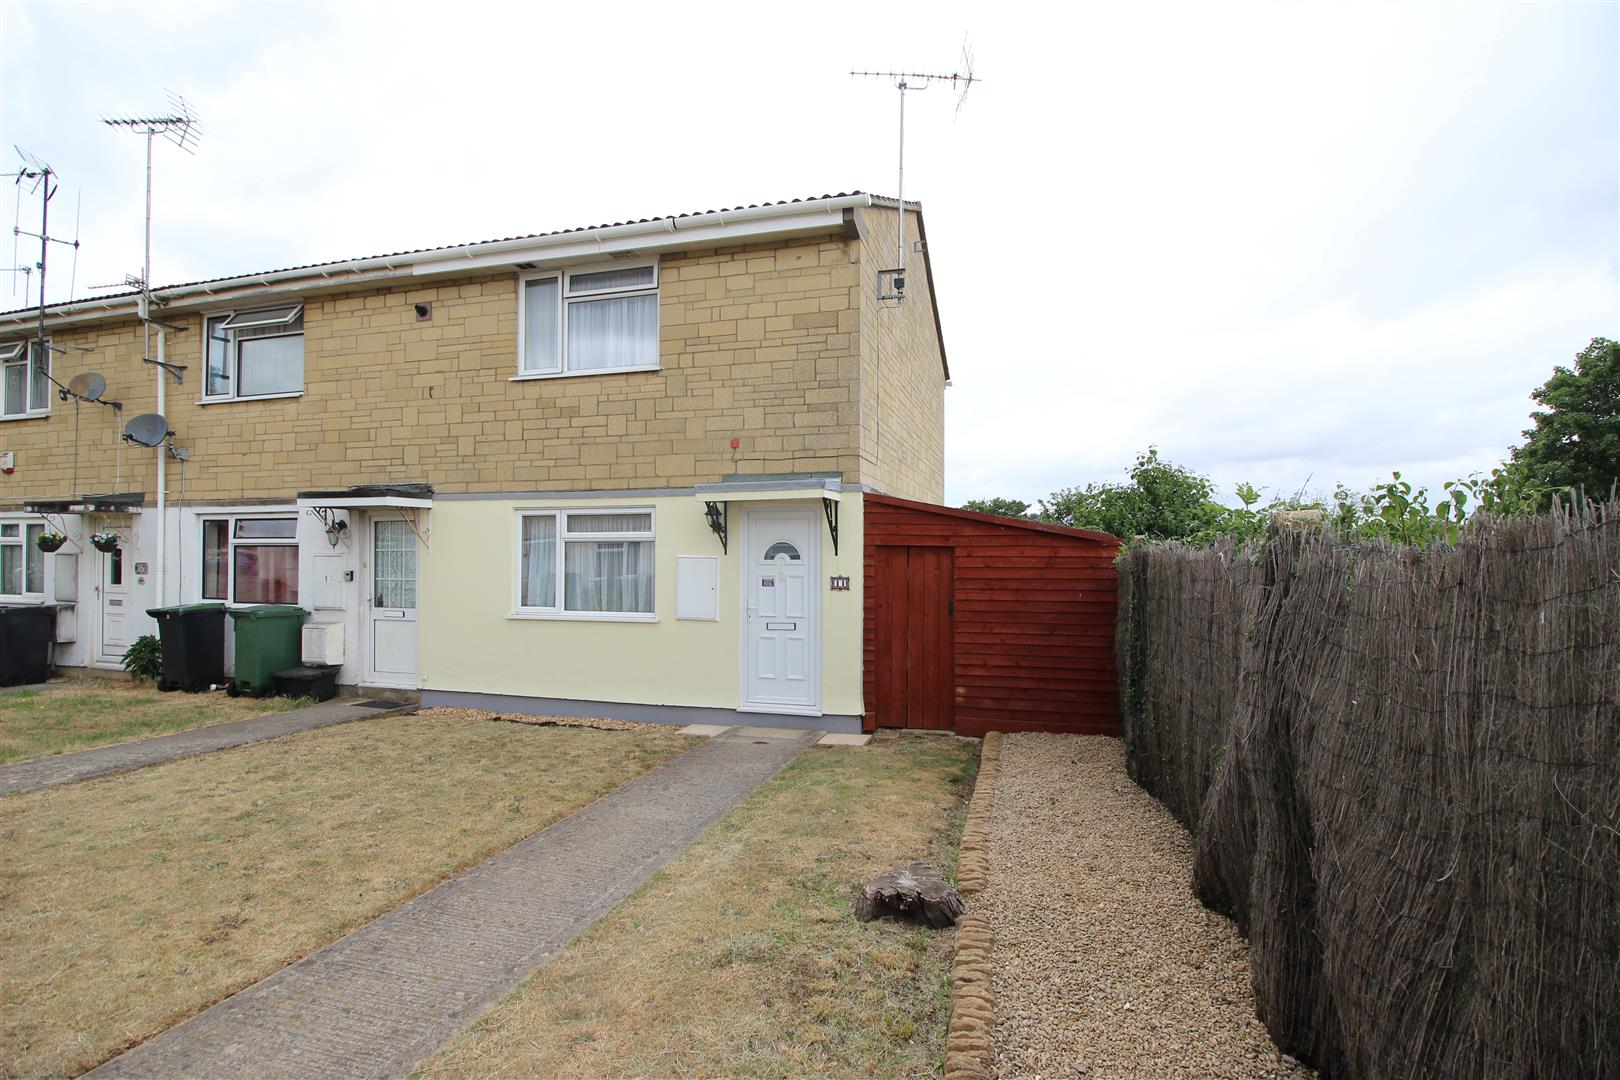 2 Bedrooms End Of Terrace House for sale in Culverwell Road, Chippenham